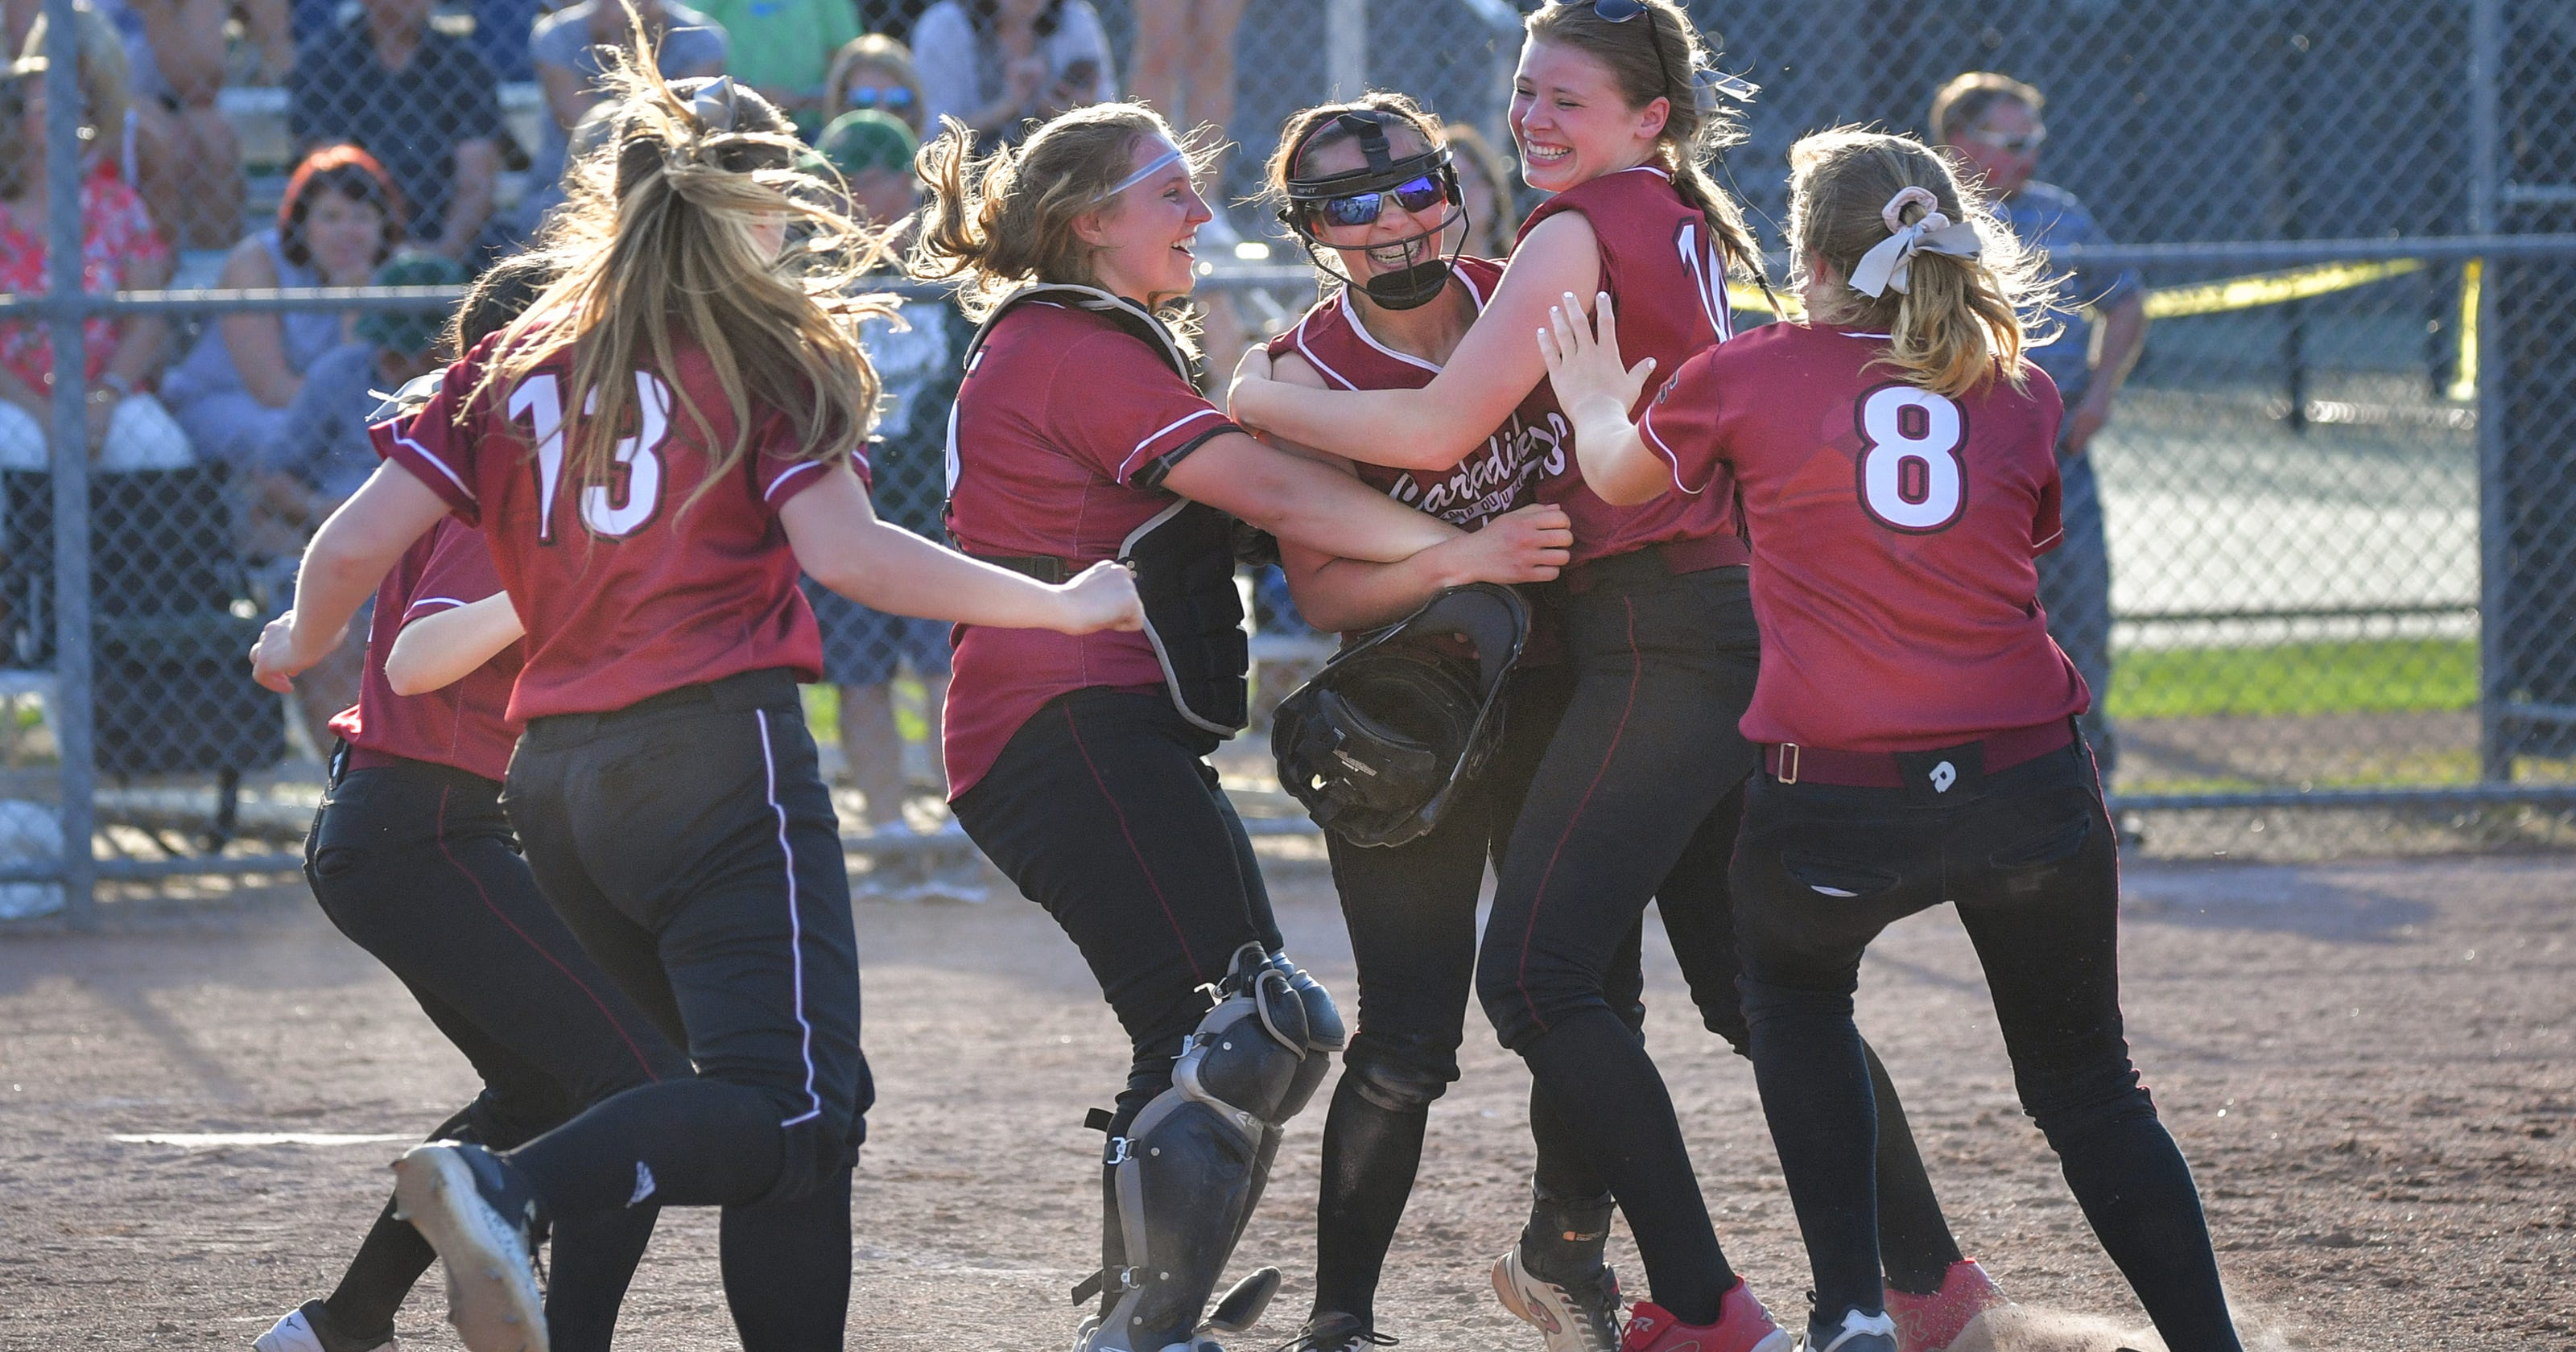 WIAA softball: Fond du Lac stuns top-ranked Oshkosh North to